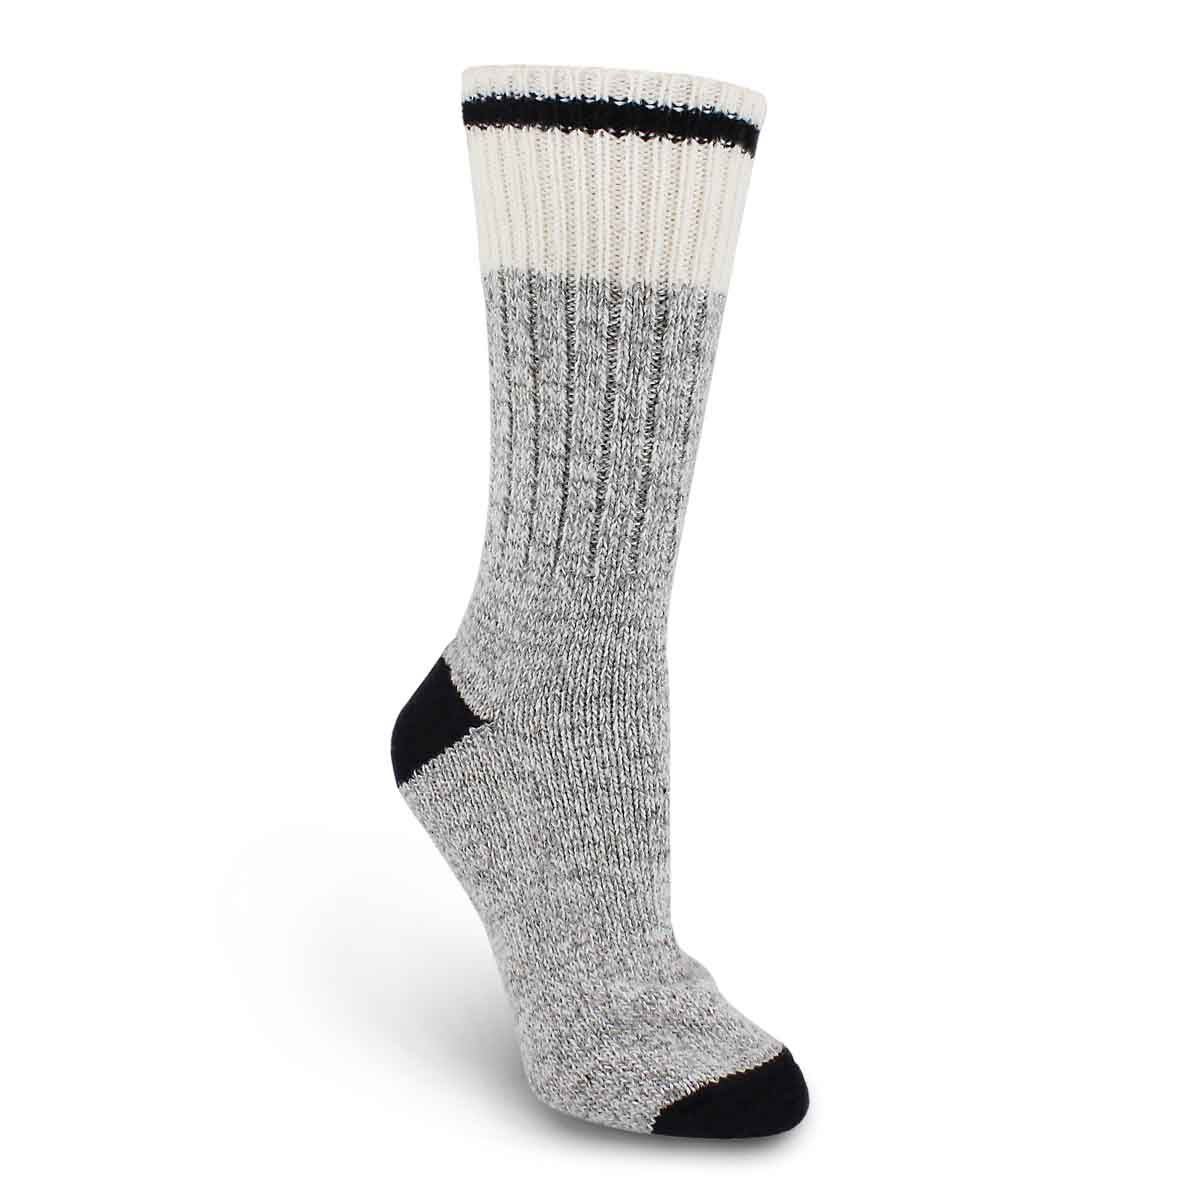 Lds Duray grey/blk wool blend heavy sock